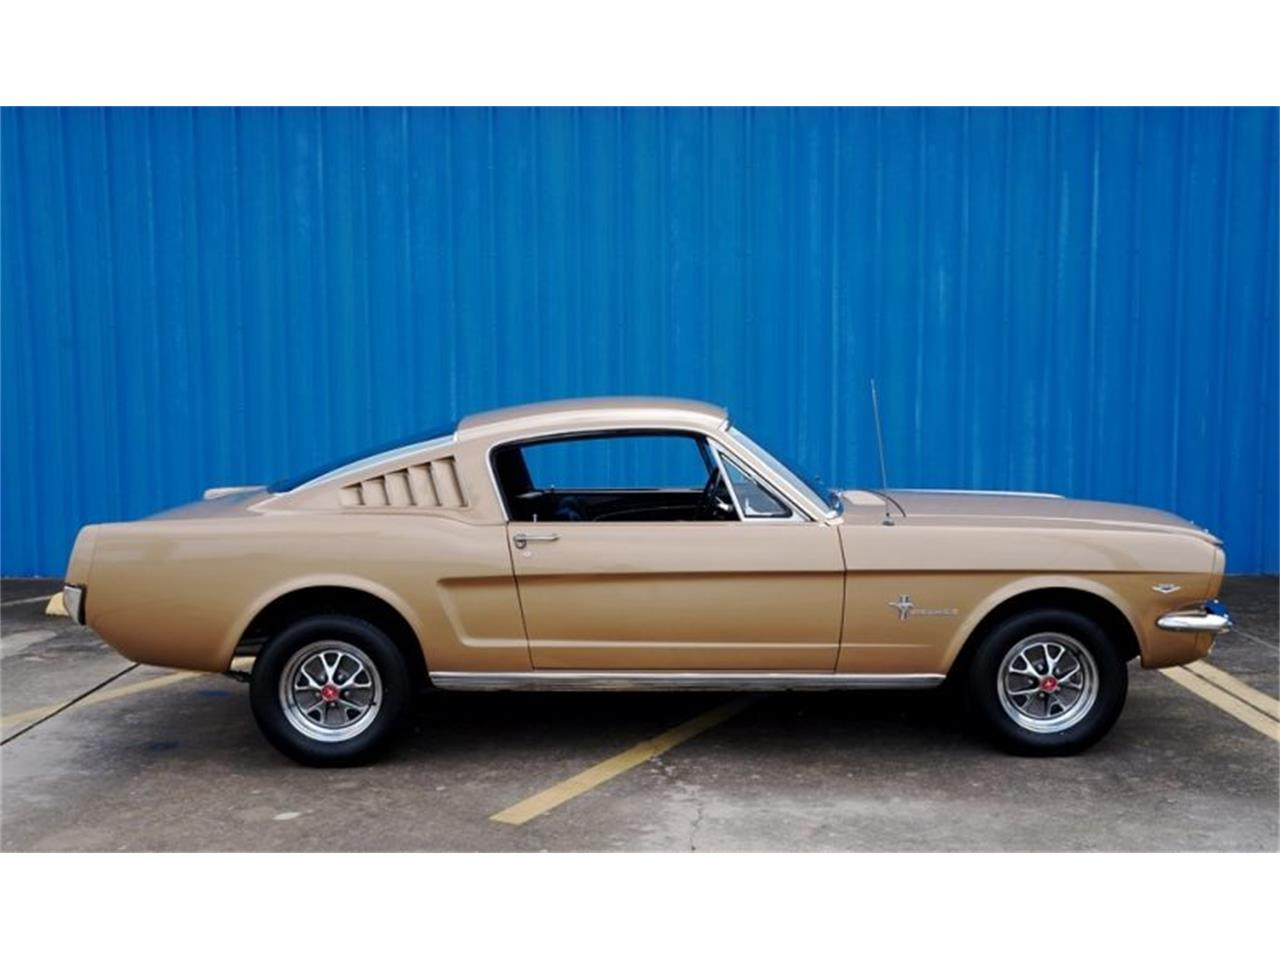 Large Picture of Classic '65 Ford Mustang - $37,500.00 - Q6QR